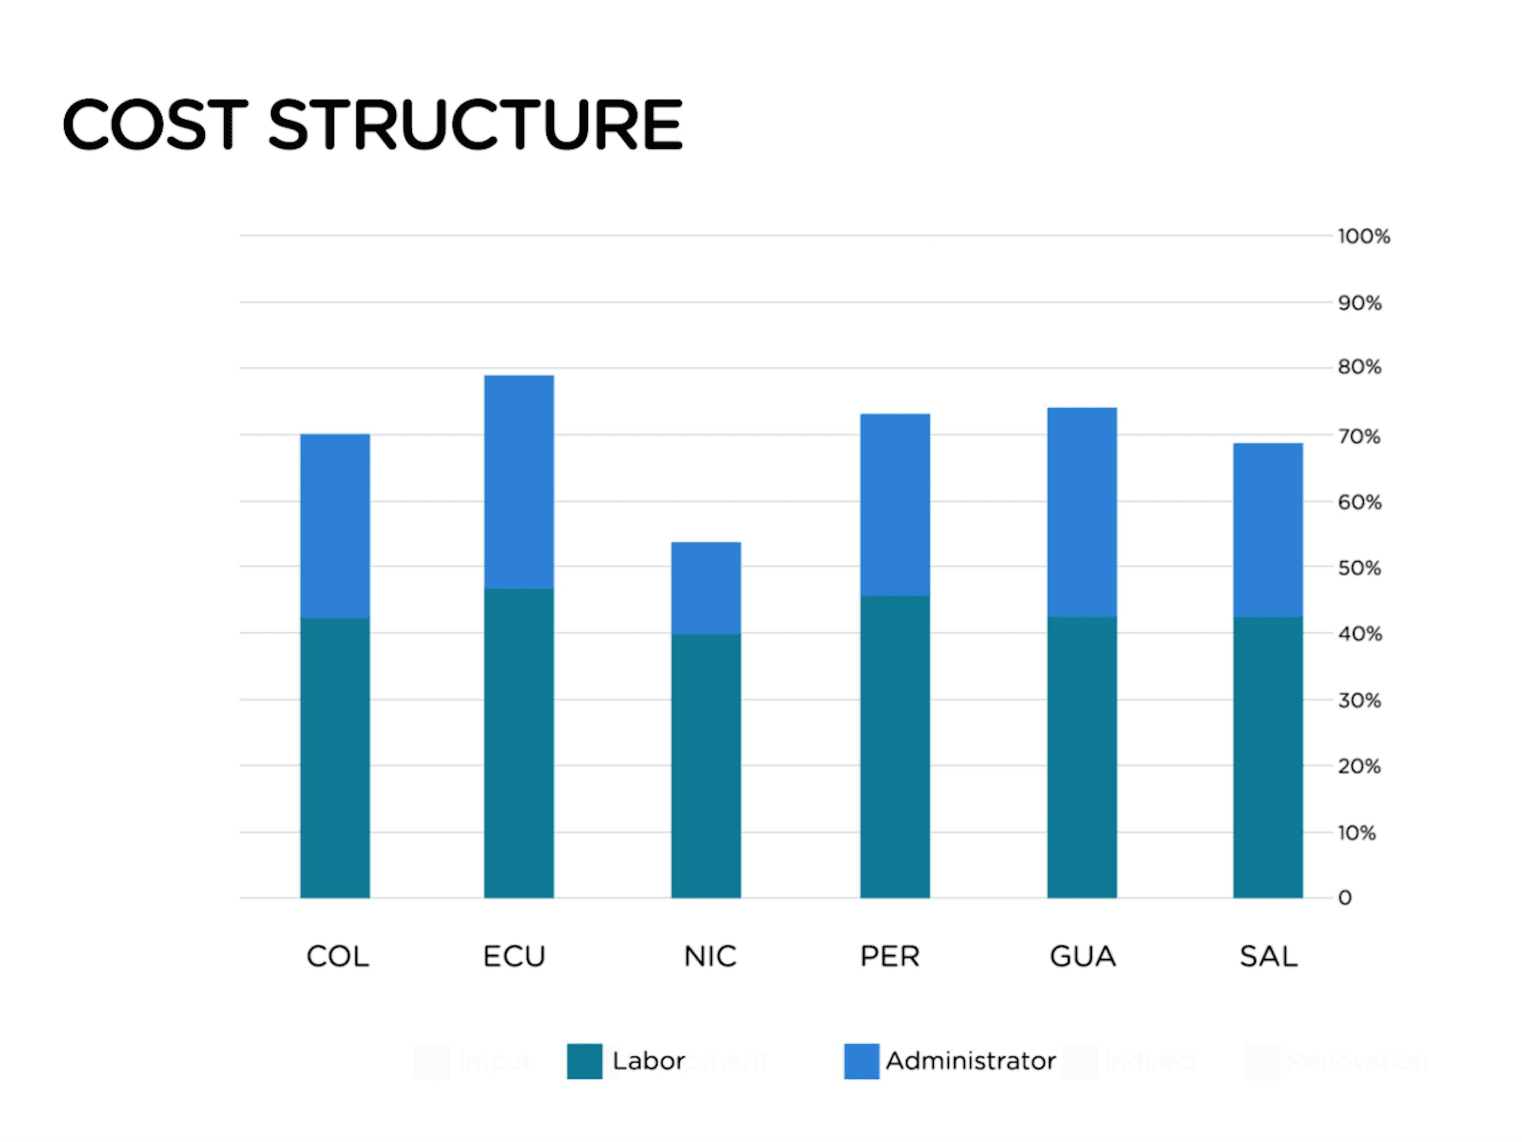 Graph of Cost Structure